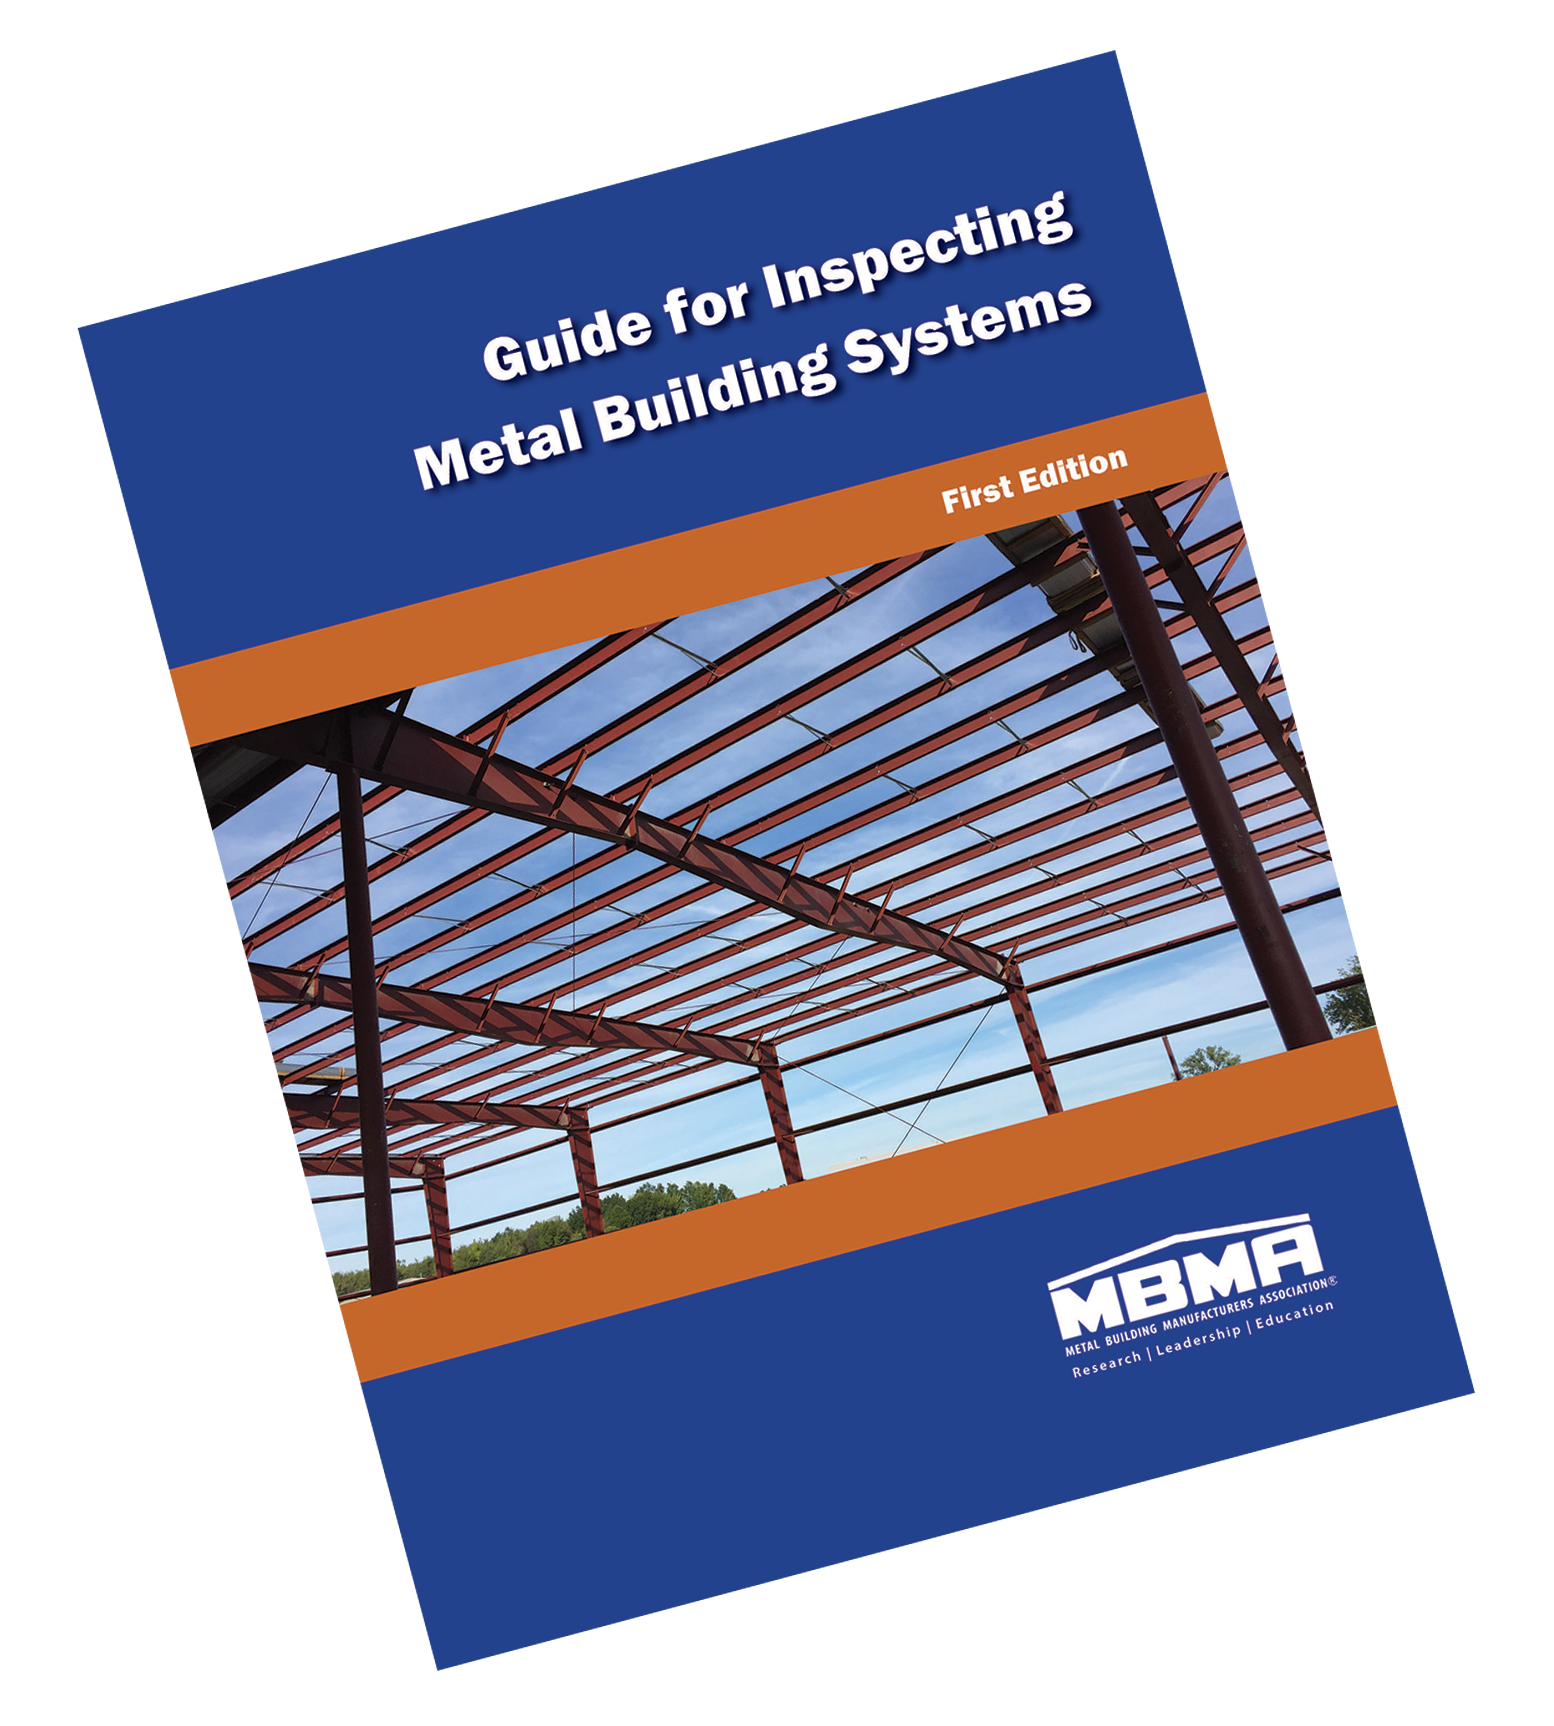 Mcn Mbma Guide For Inspecting Metal Building Systems Now